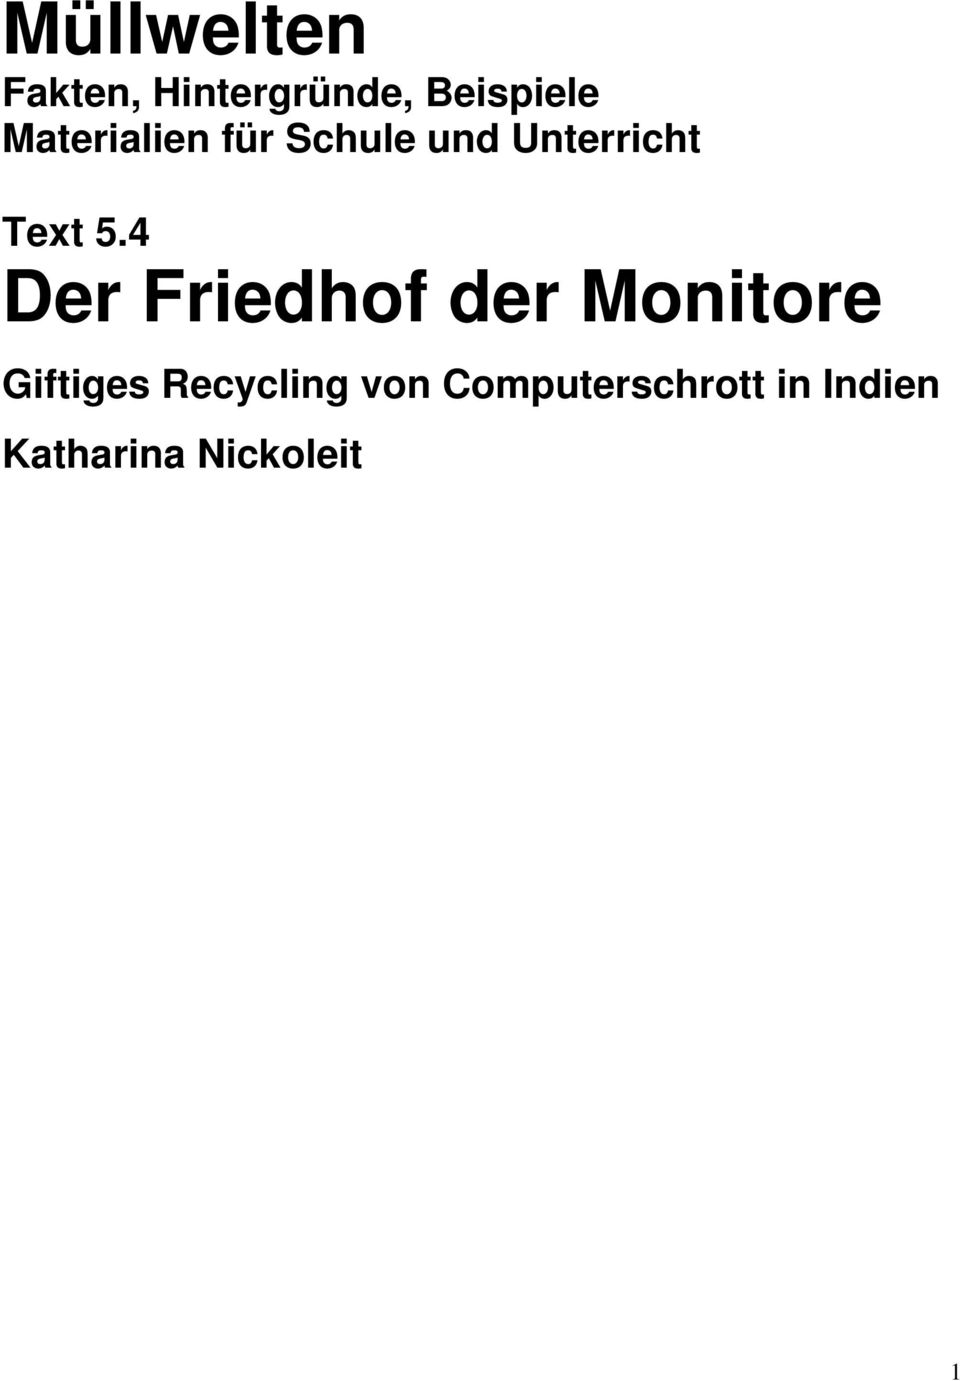 4 Der Friedhof der Monitore Giftiges Recycling